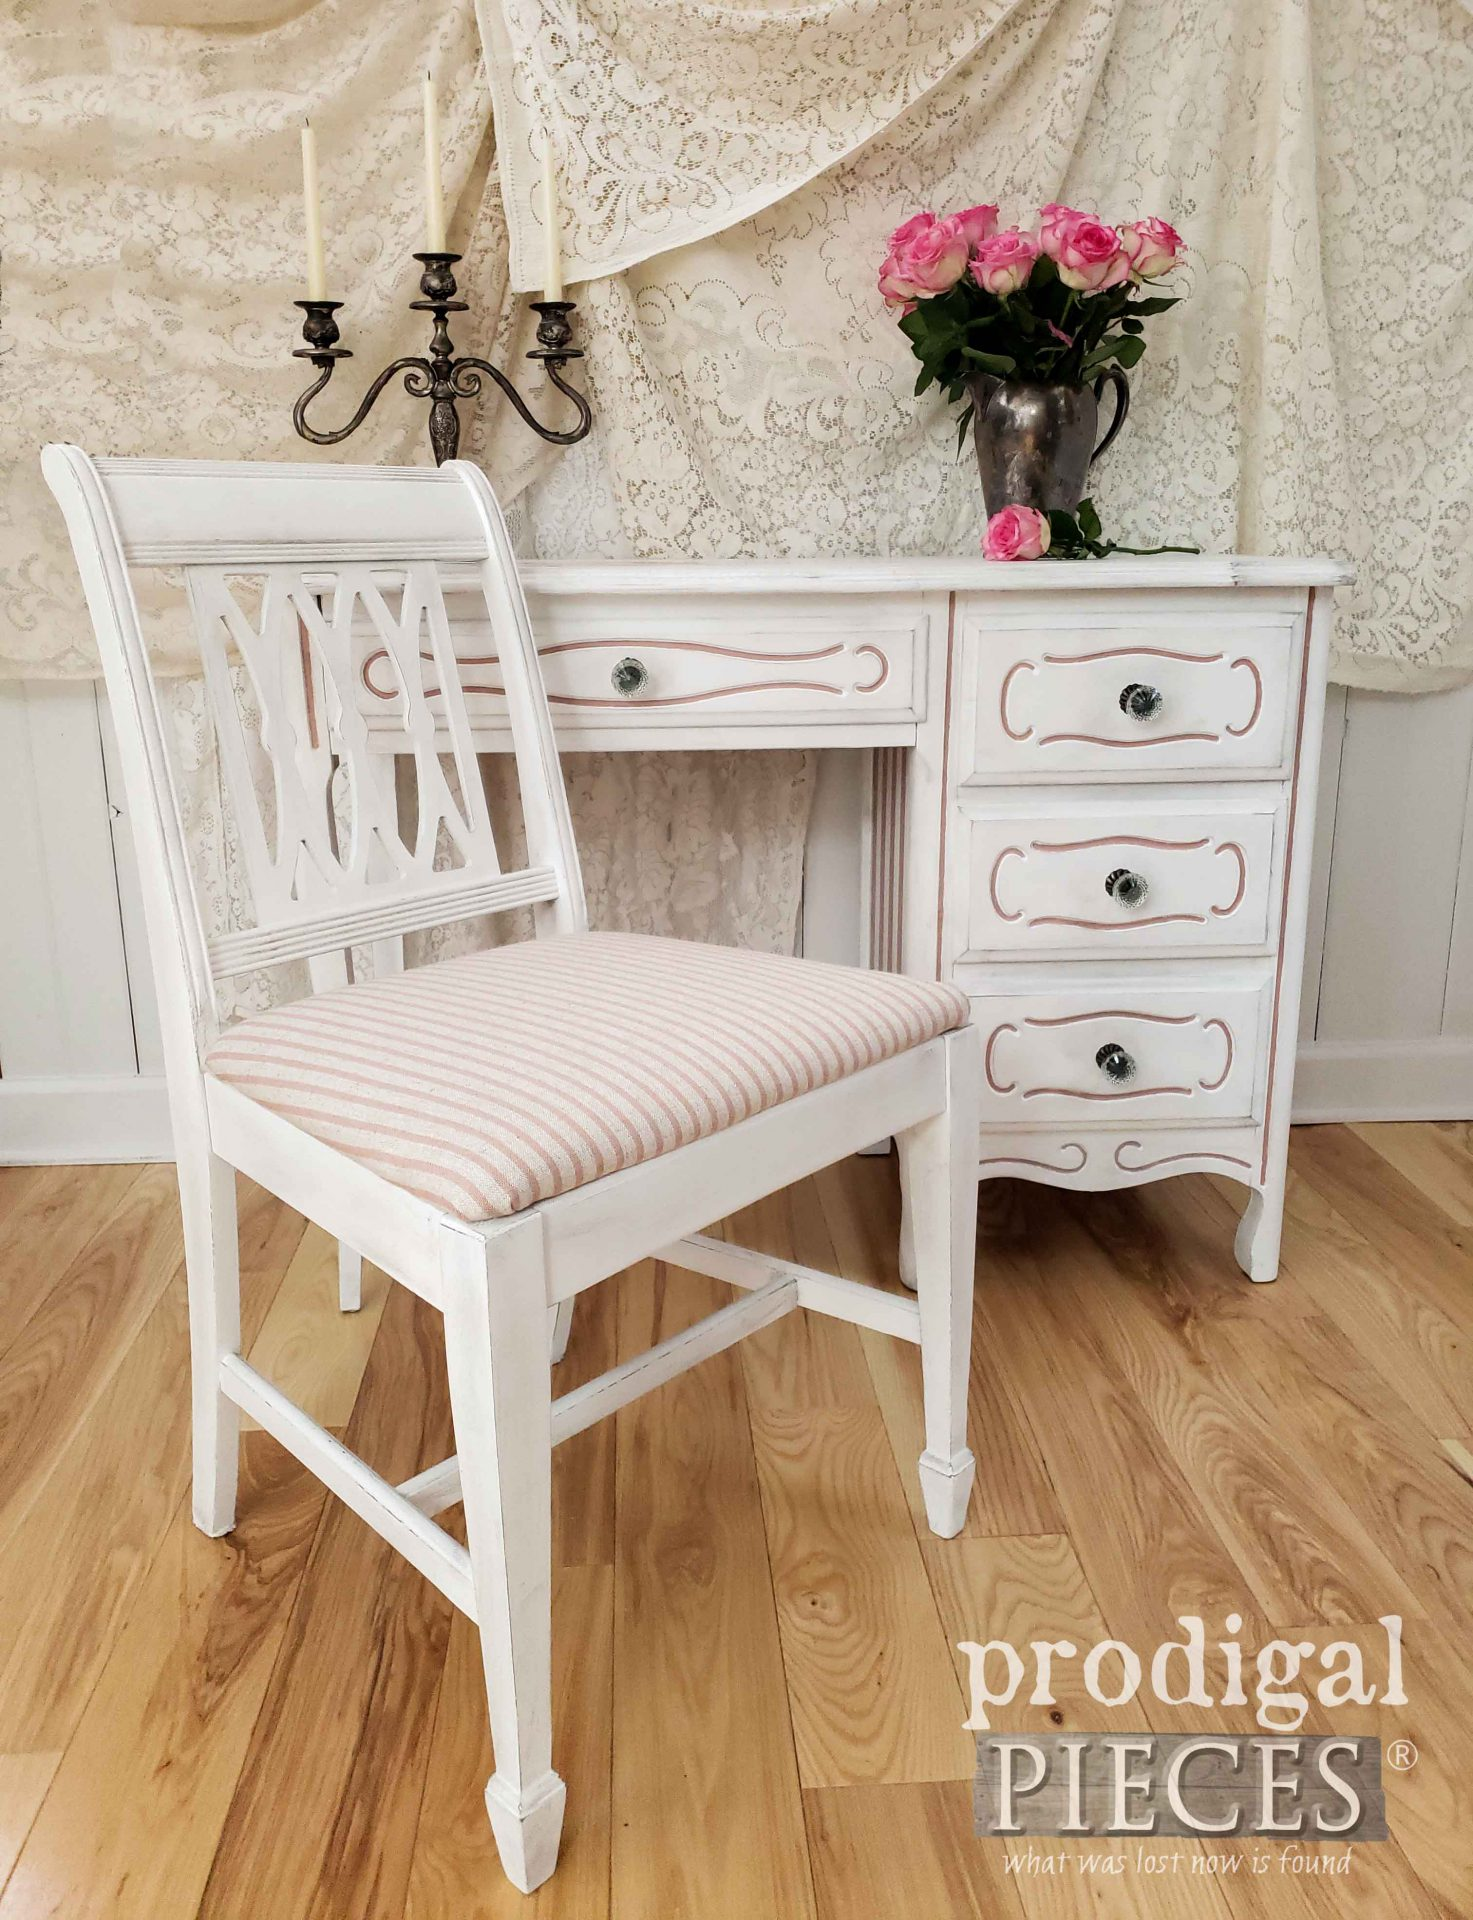 Linen French Stripe Upholstery for Vintage Desk Set Makeover by Larissa of Prodigal Pieces | prodigalpieces.com #prodigalpieces #diy #furniture #shabbychic #home #homedecor